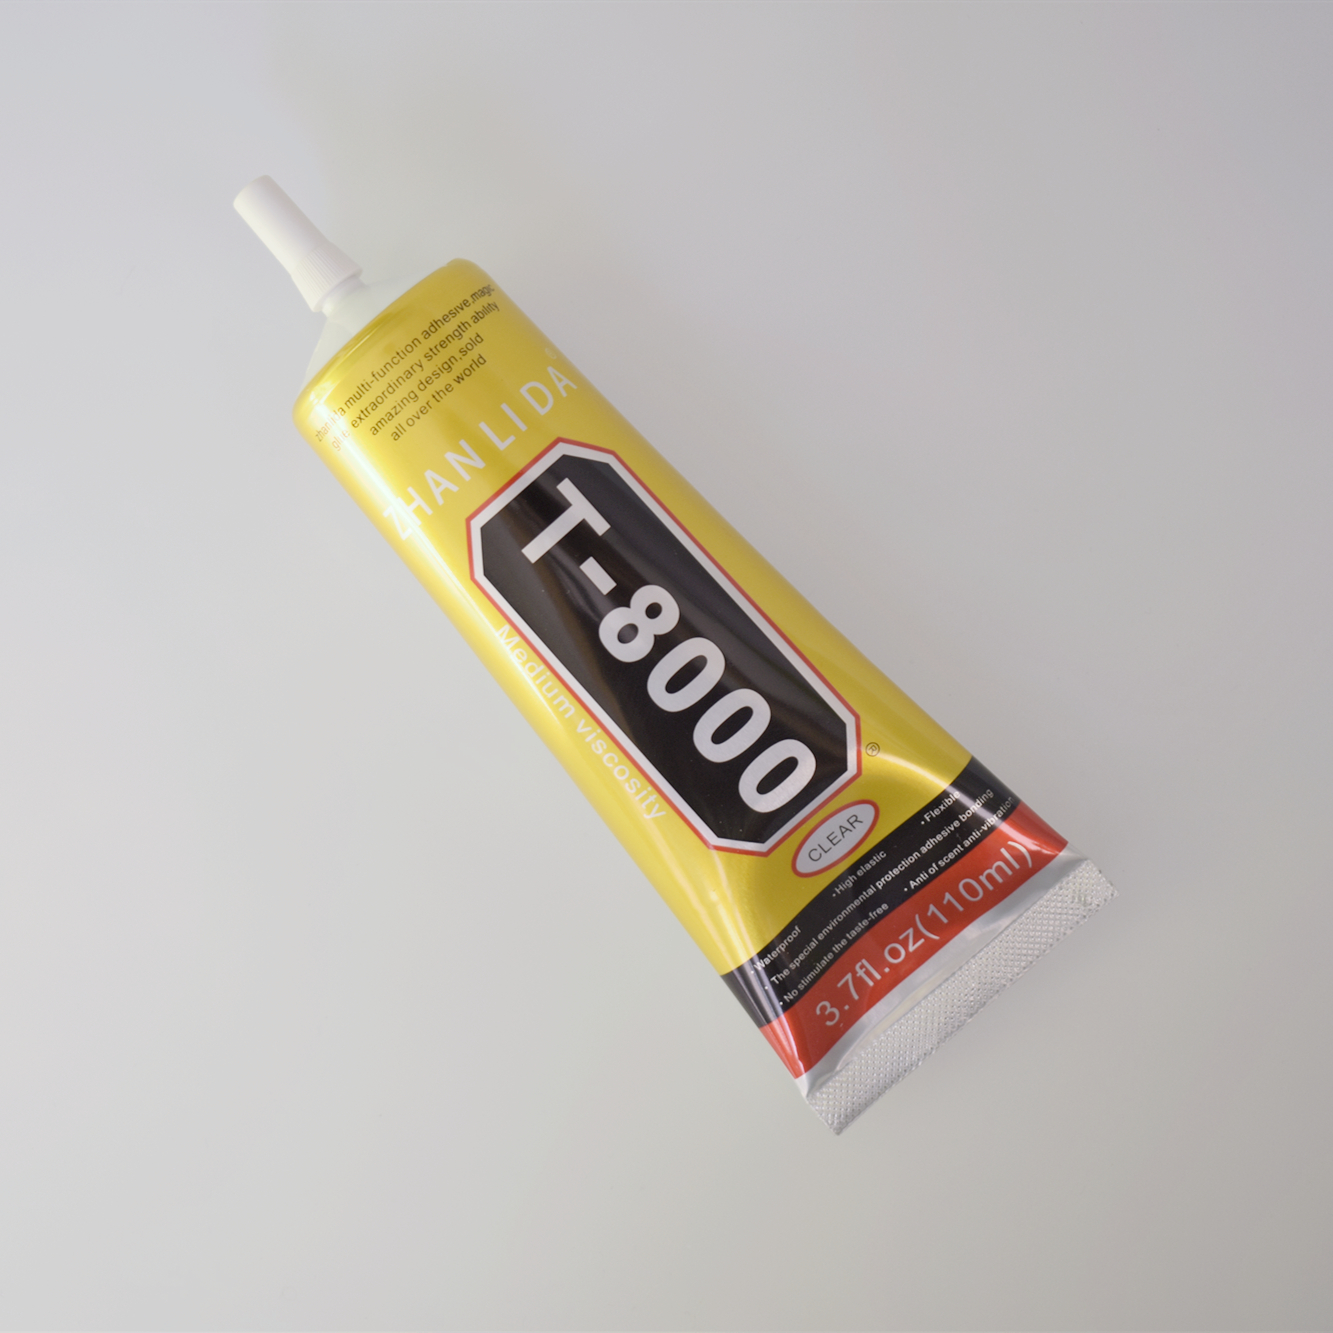 1 Pcs <font><b>110ml</b></font> T-8000 Glue <font><b>T8000</b></font> Multi Purpose Glue Adhesive Epoxy Resin Repair Cell Phone LCD Touch Screen Super Glue T 8000 image